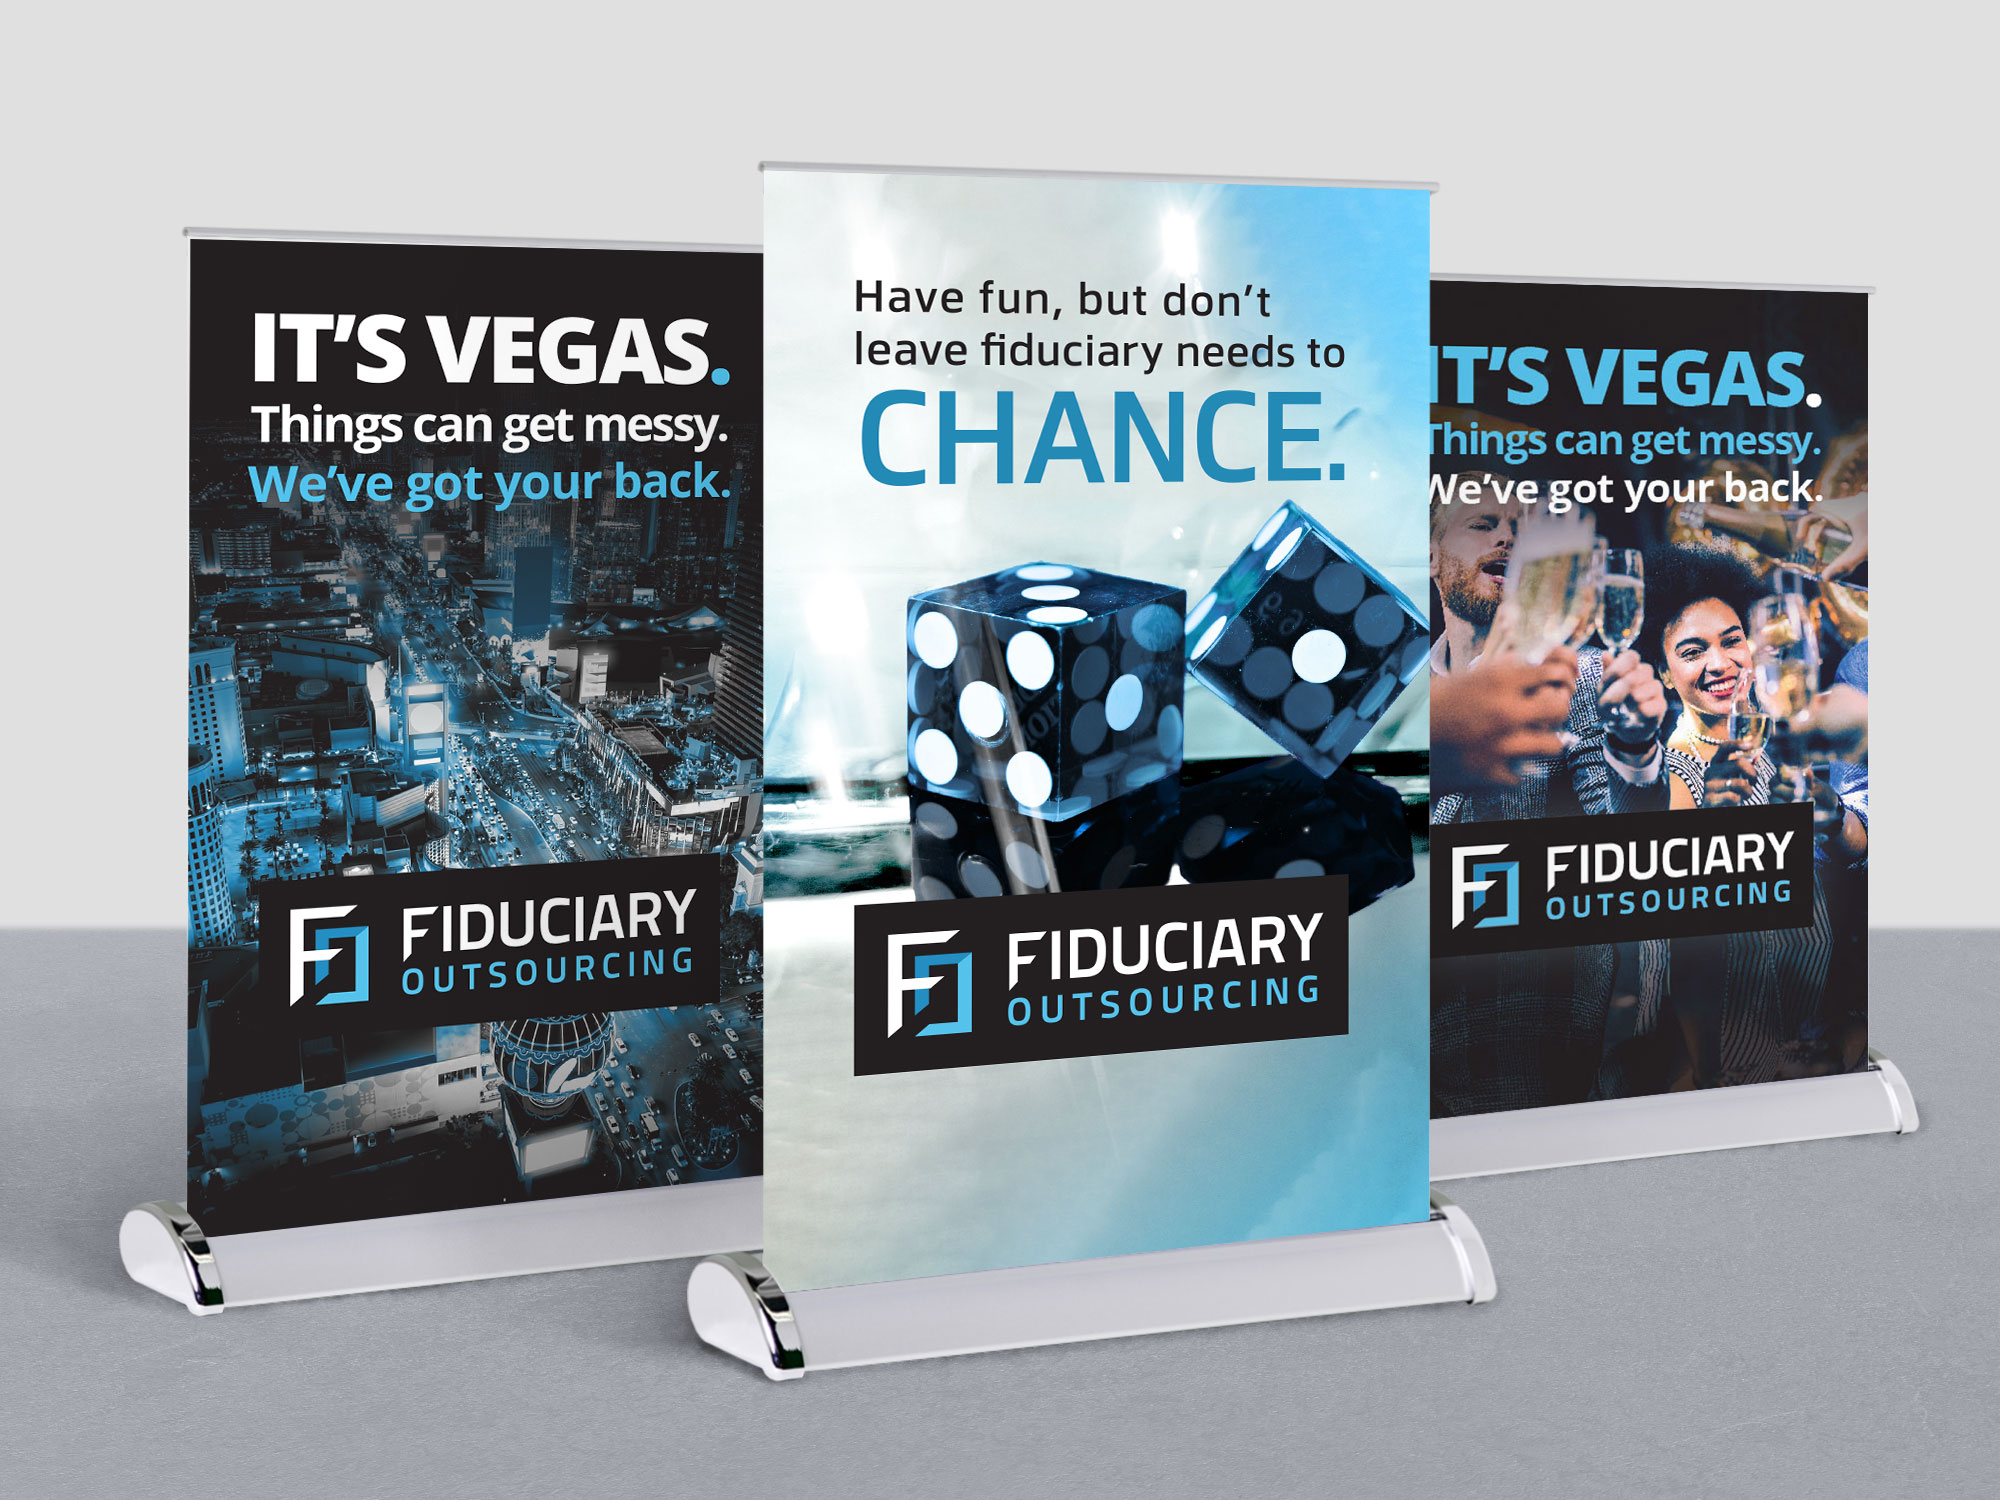 Three small tabletop standing banners with marketing messages customized to a trade show event in Vegas